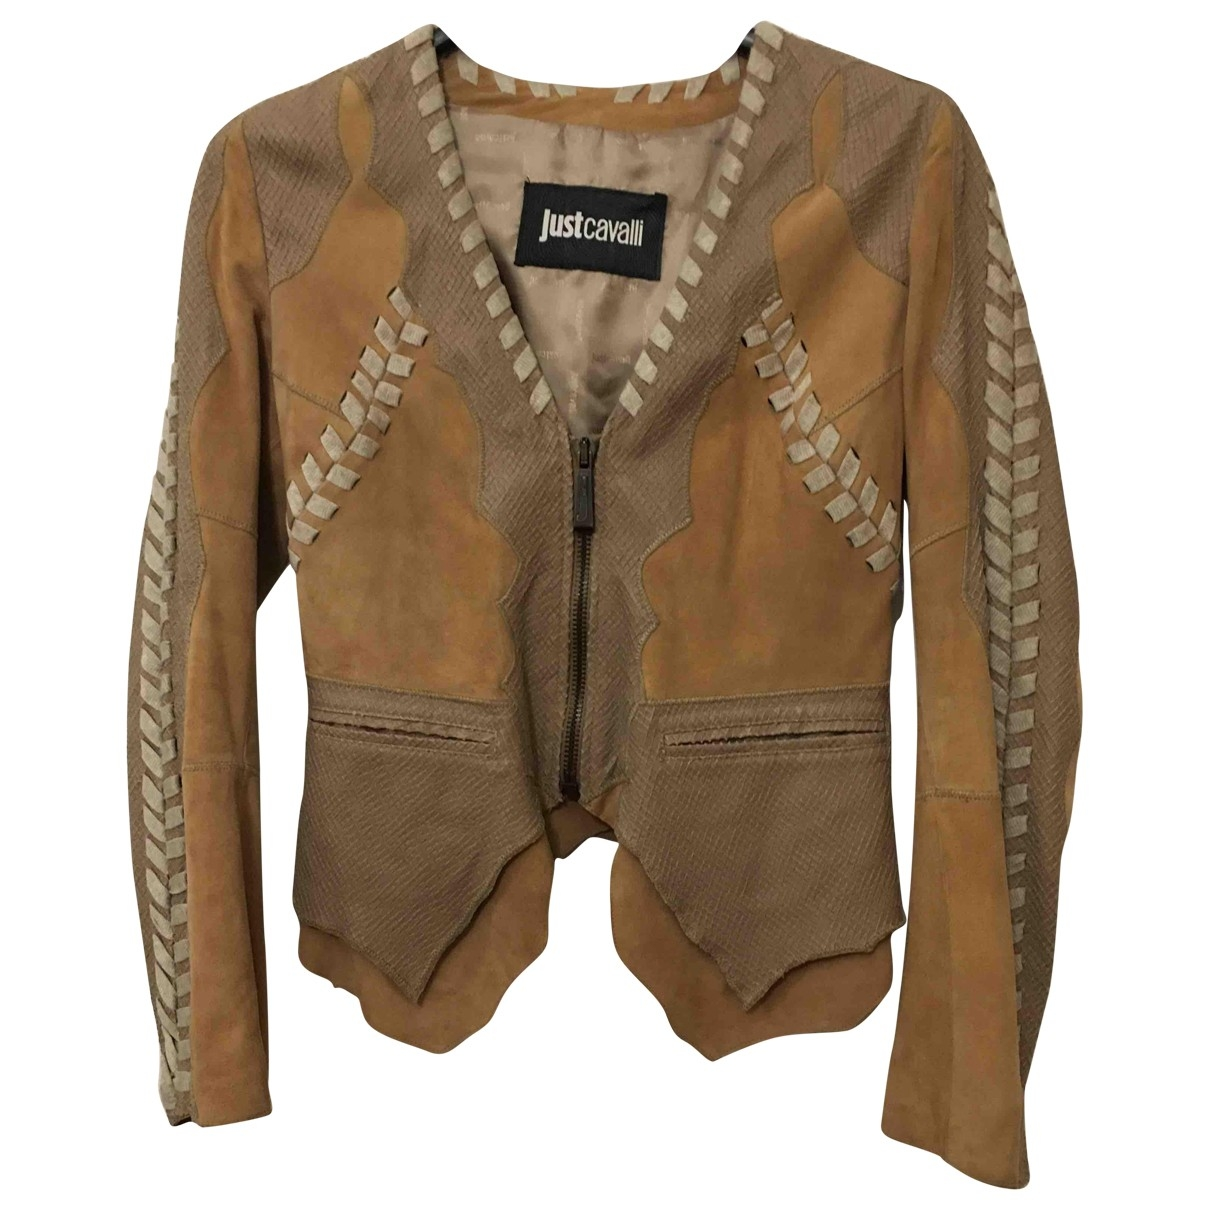 Just Cavalli \N Beige Suede Leather jacket for Women 40 IT